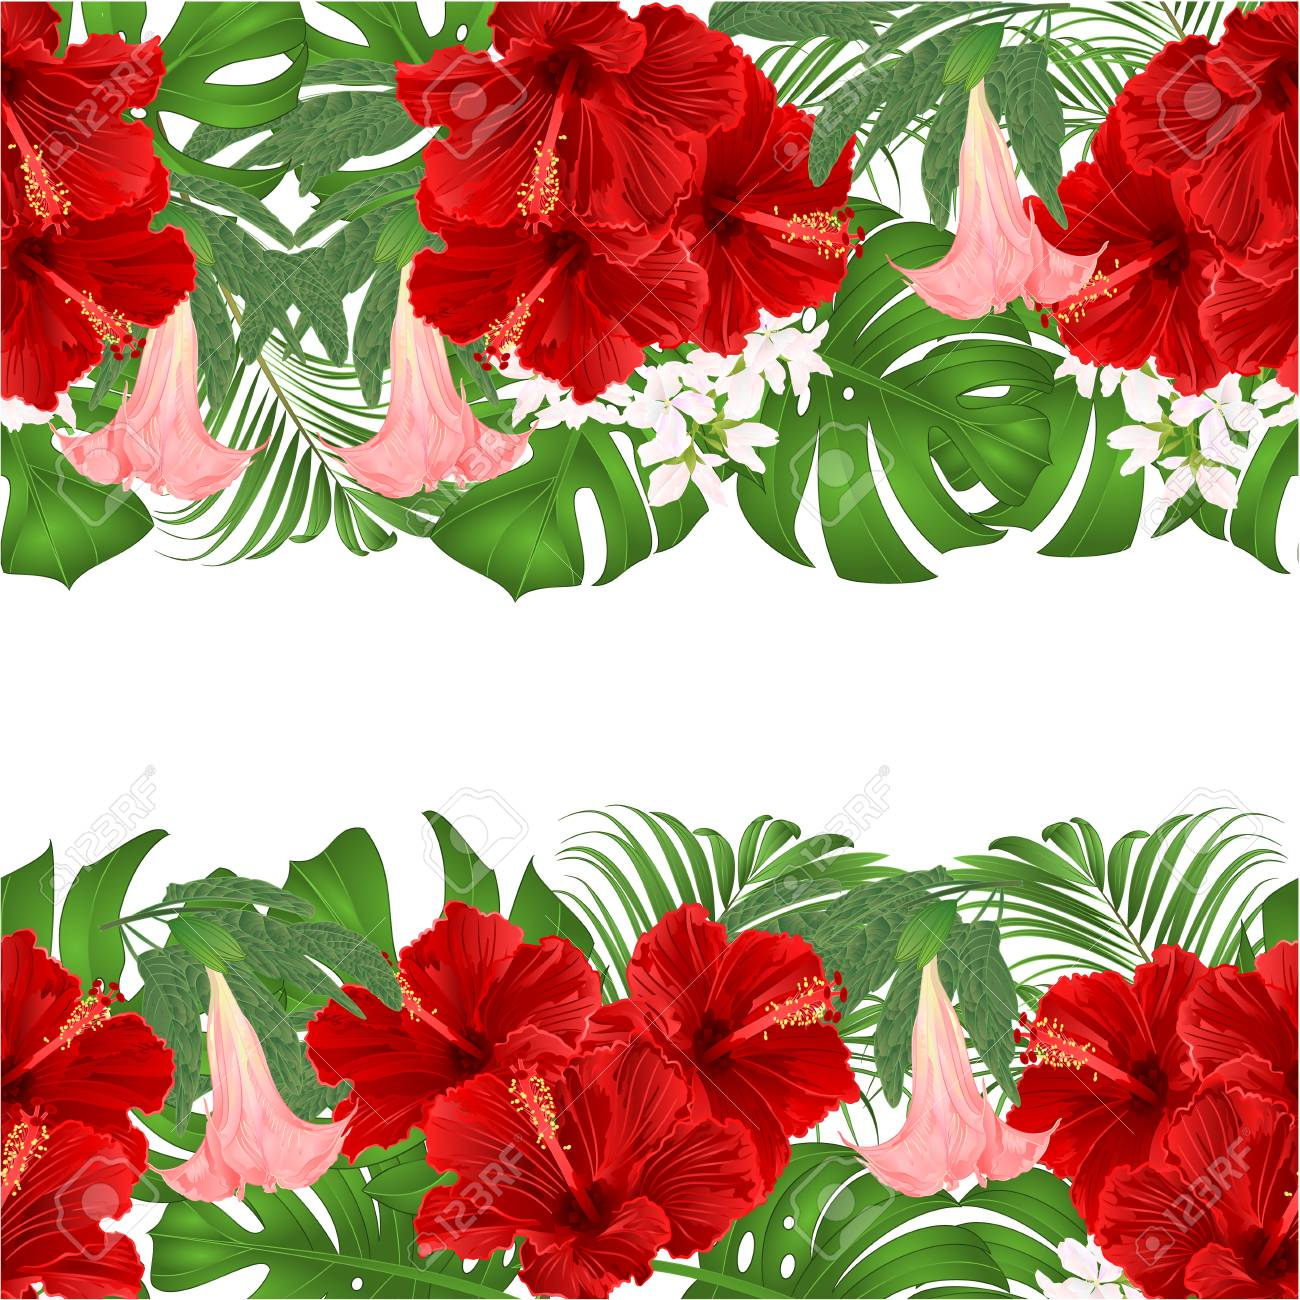 Floral Border Seamless Background Horizontal Bouquet With Tropical